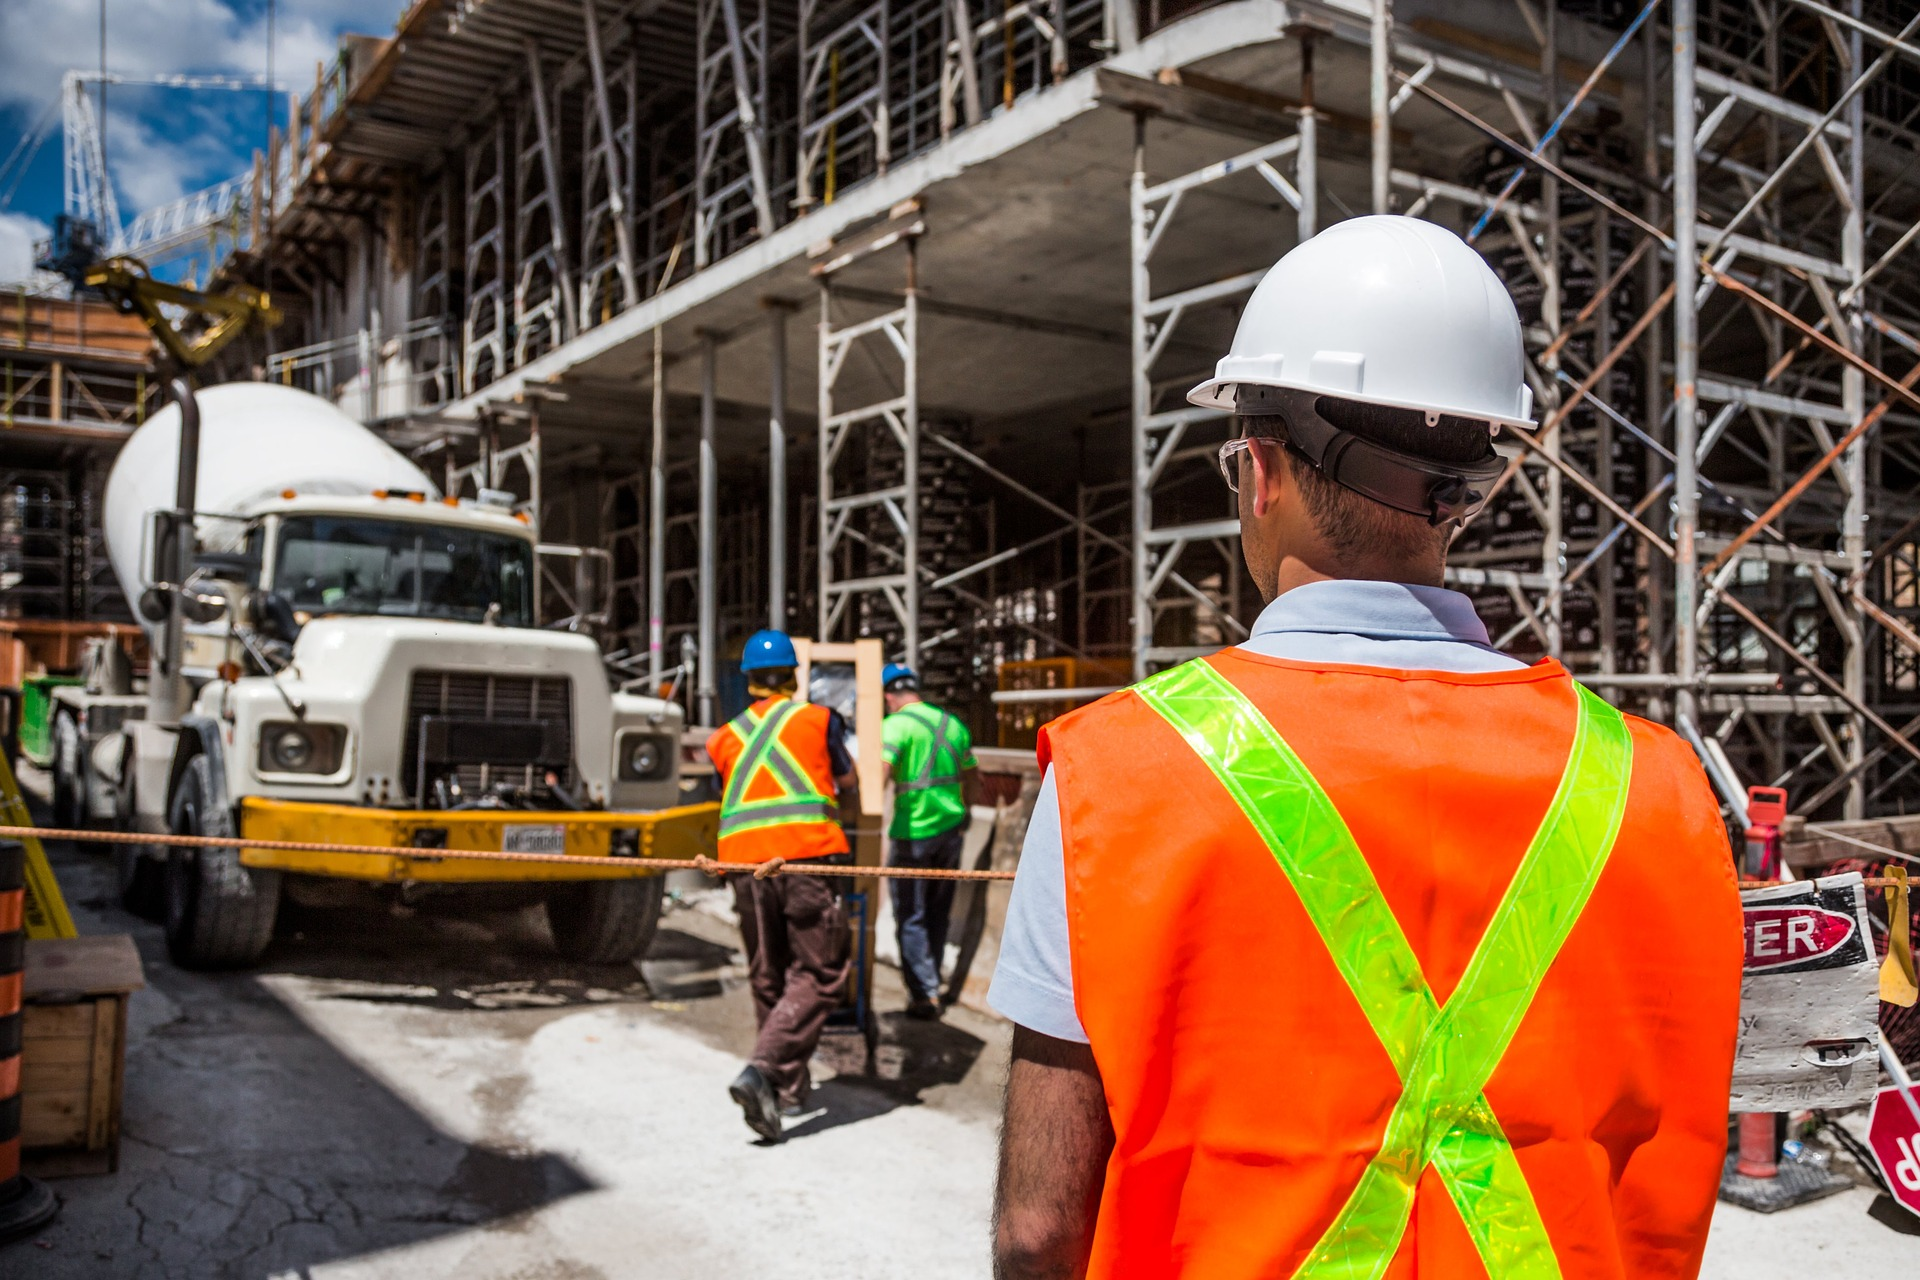 Eden Safety Services - Site Safety Officers, Sie Audits, Site Safety Induction